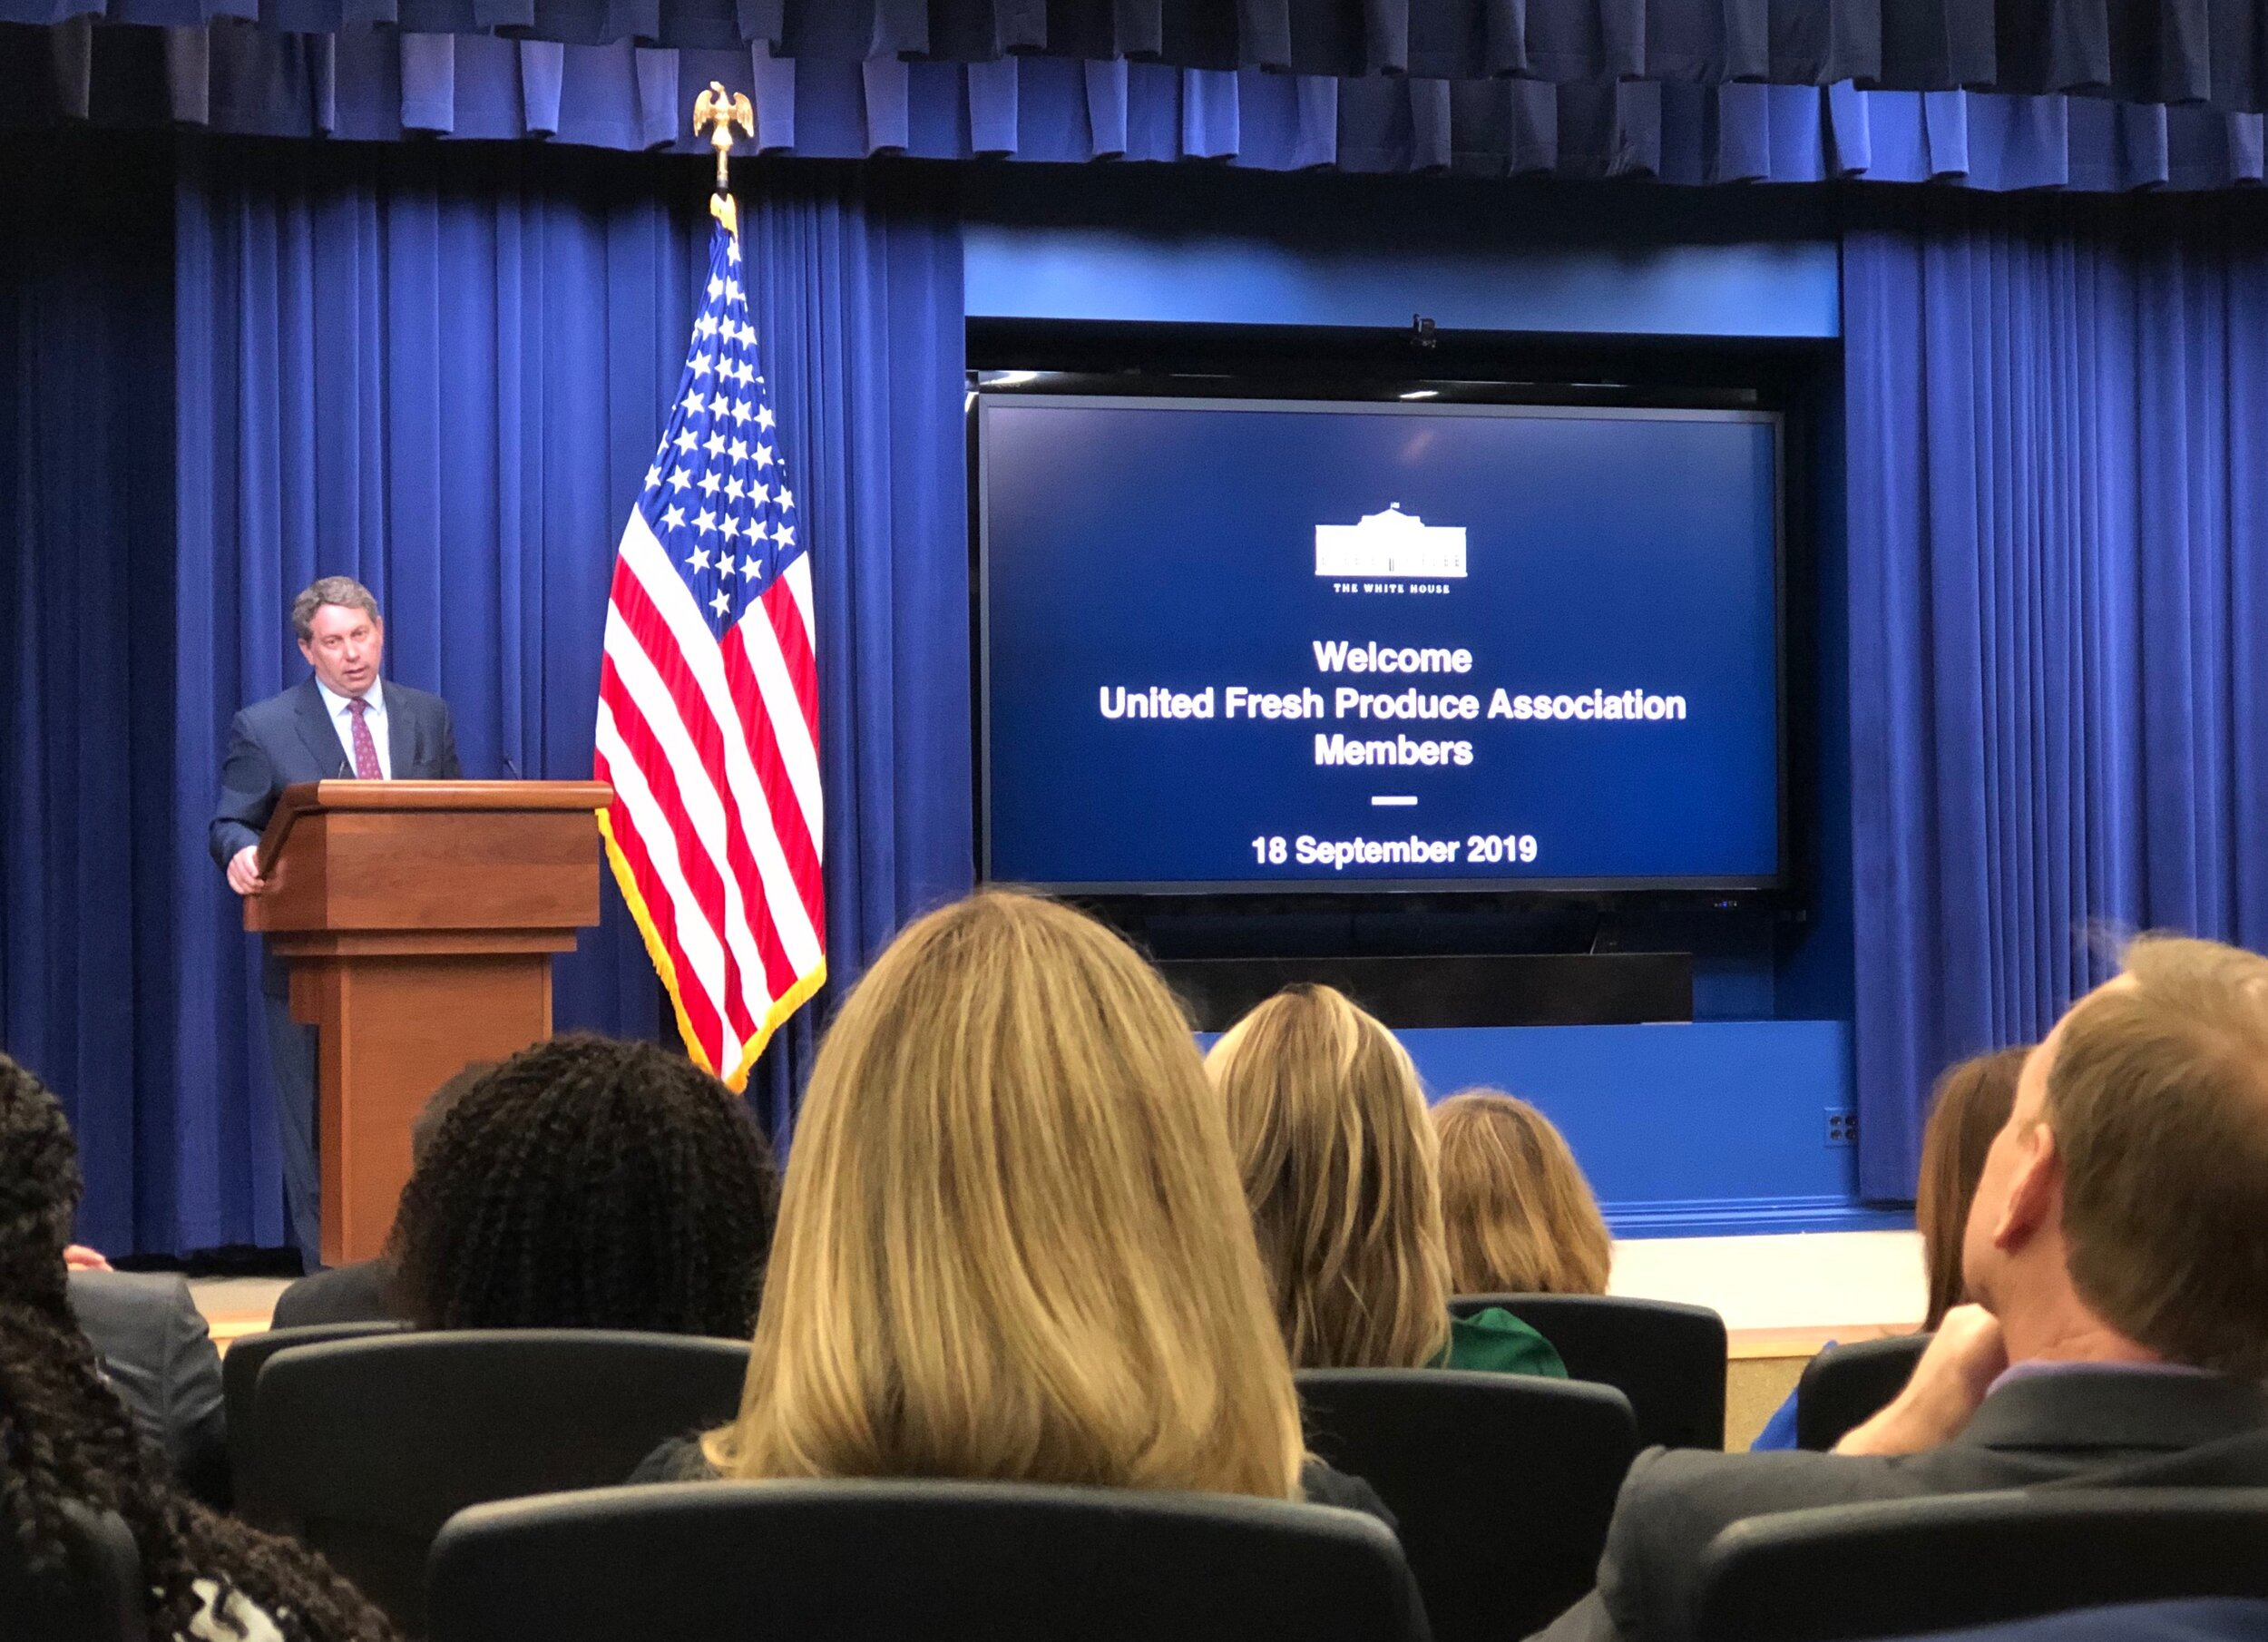 Chief Agricultural Negotiator, Greg Doud, pictured at The White House briefing